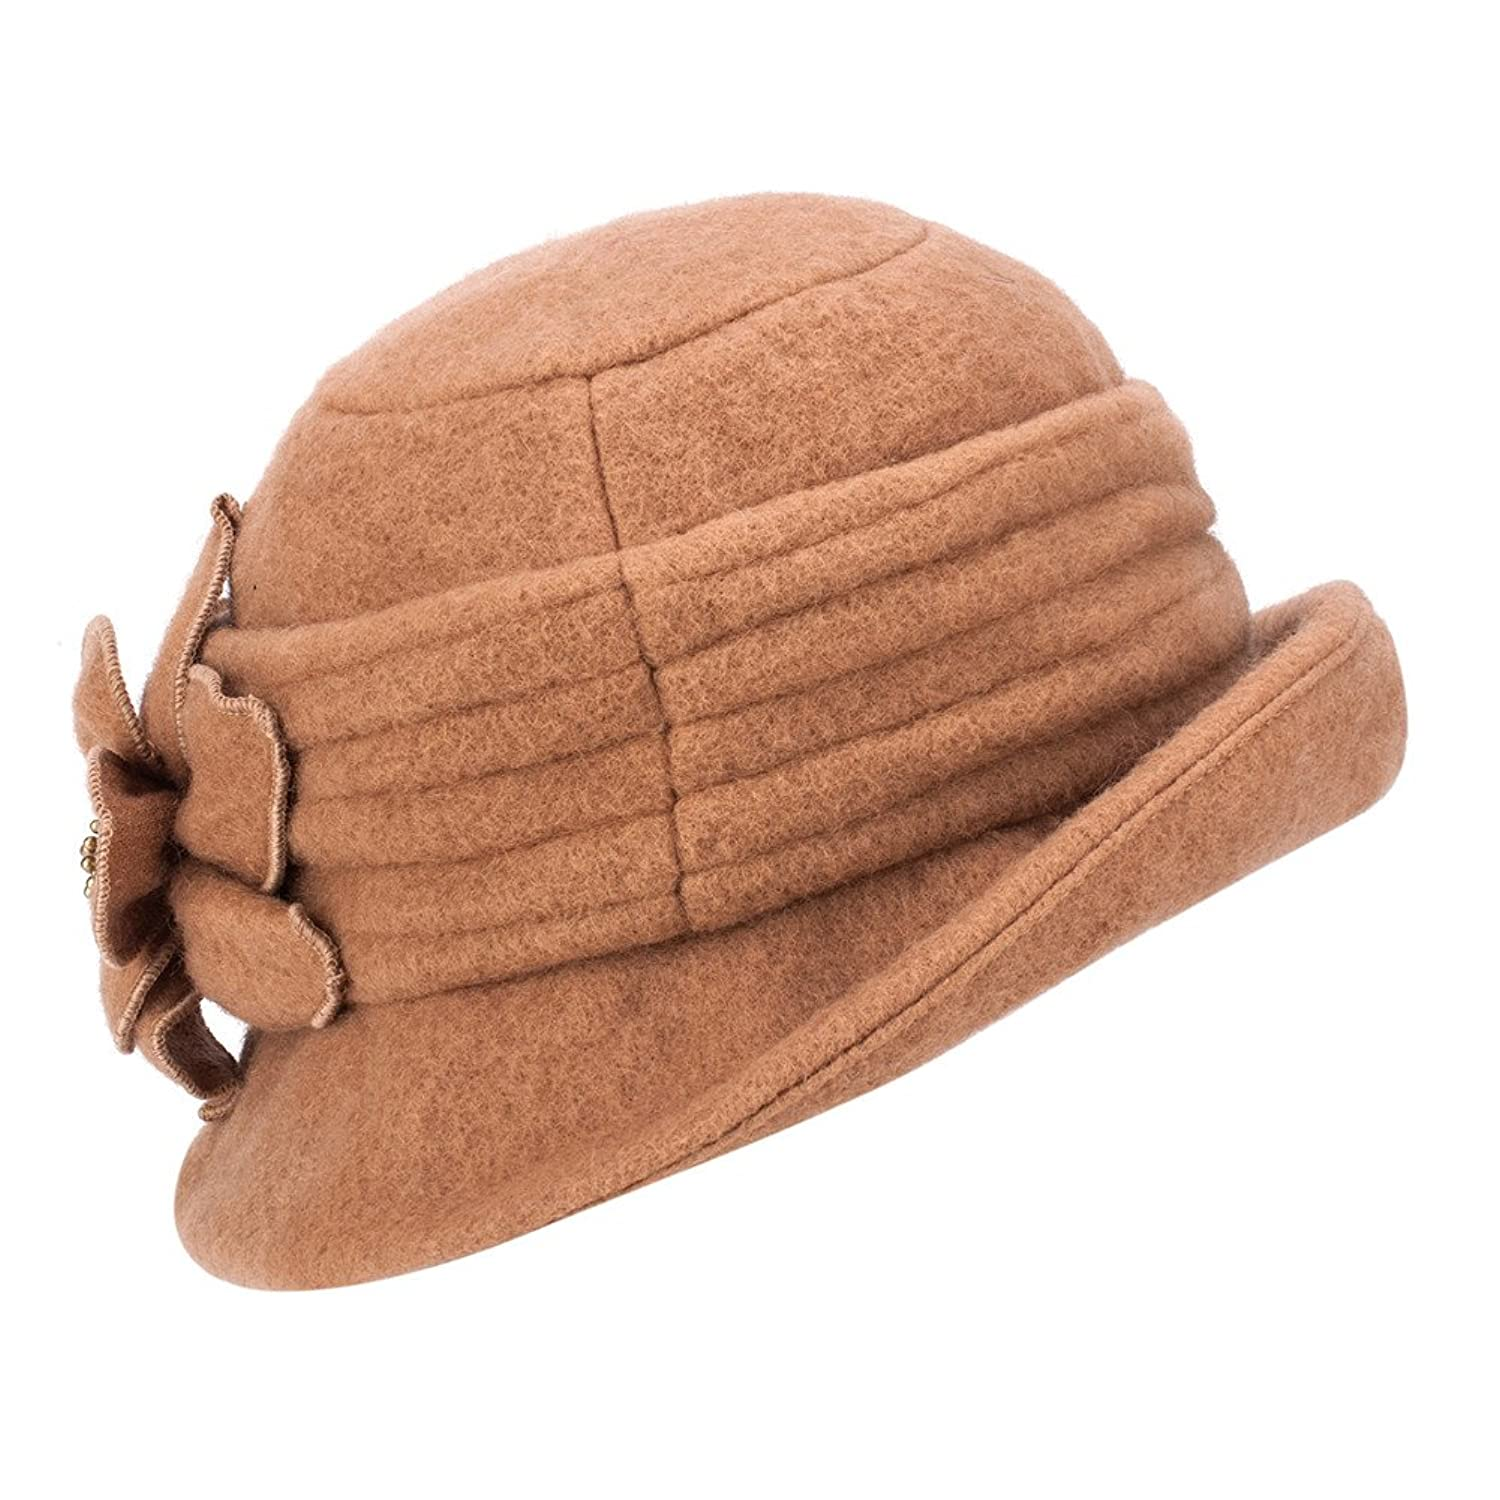 1920s Accessories | Great Gatsby Accessories Guide Womens GATSBY 1920s Winter Wool Cap Beret Beanie Cloche Bucket Hat A299 $17.99 AT vintagedancer.com